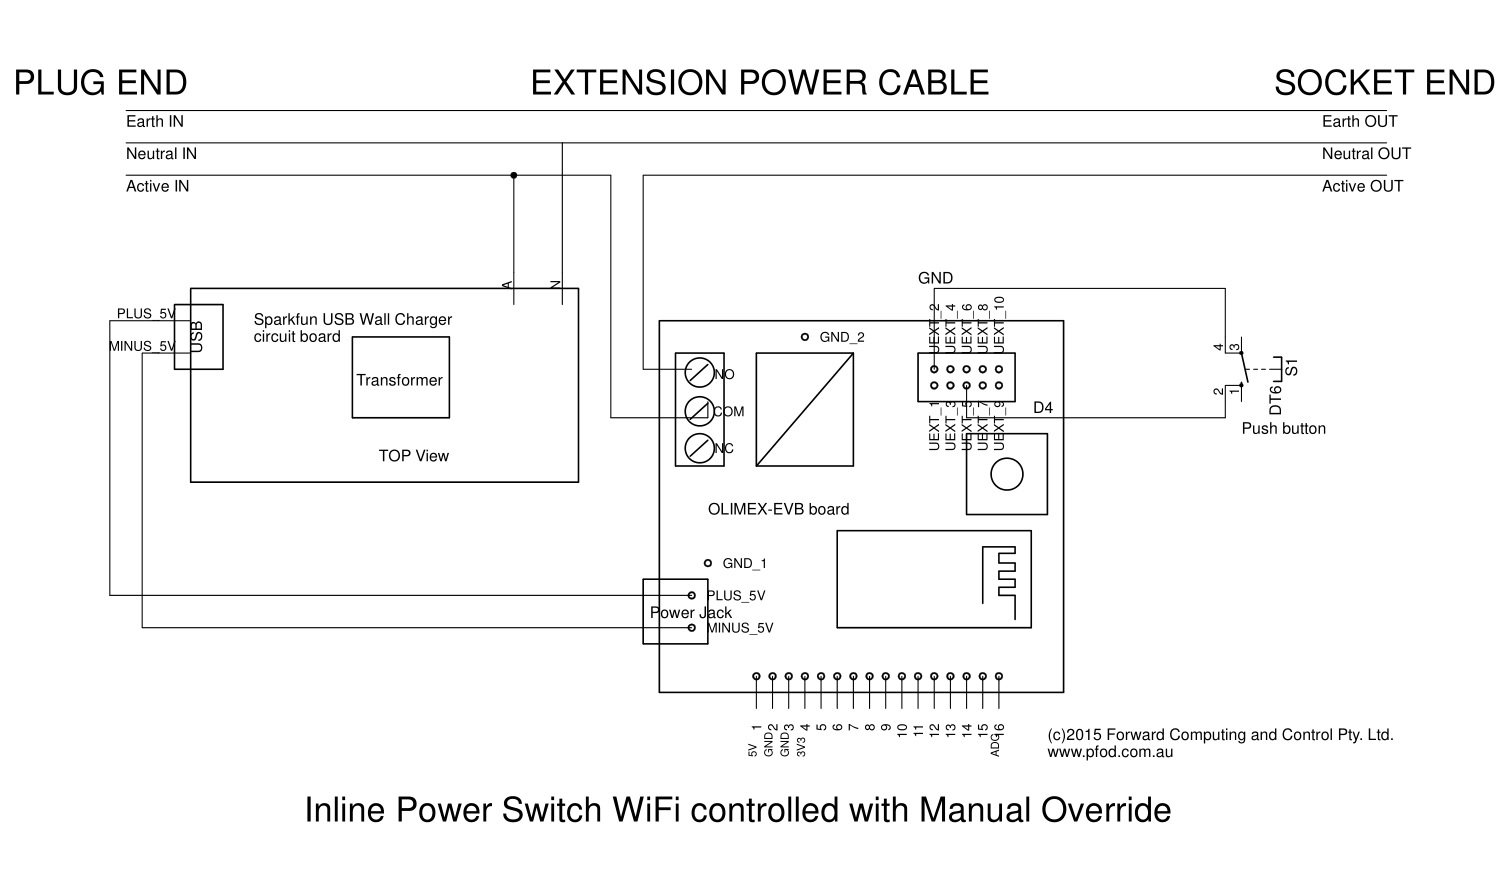 simple secure internet power switch manual override iot the usb supply board is mounted under the olimex evb board using scotch heavy duty holds 2kg double sided tap and a small sheet of nylon to insulate